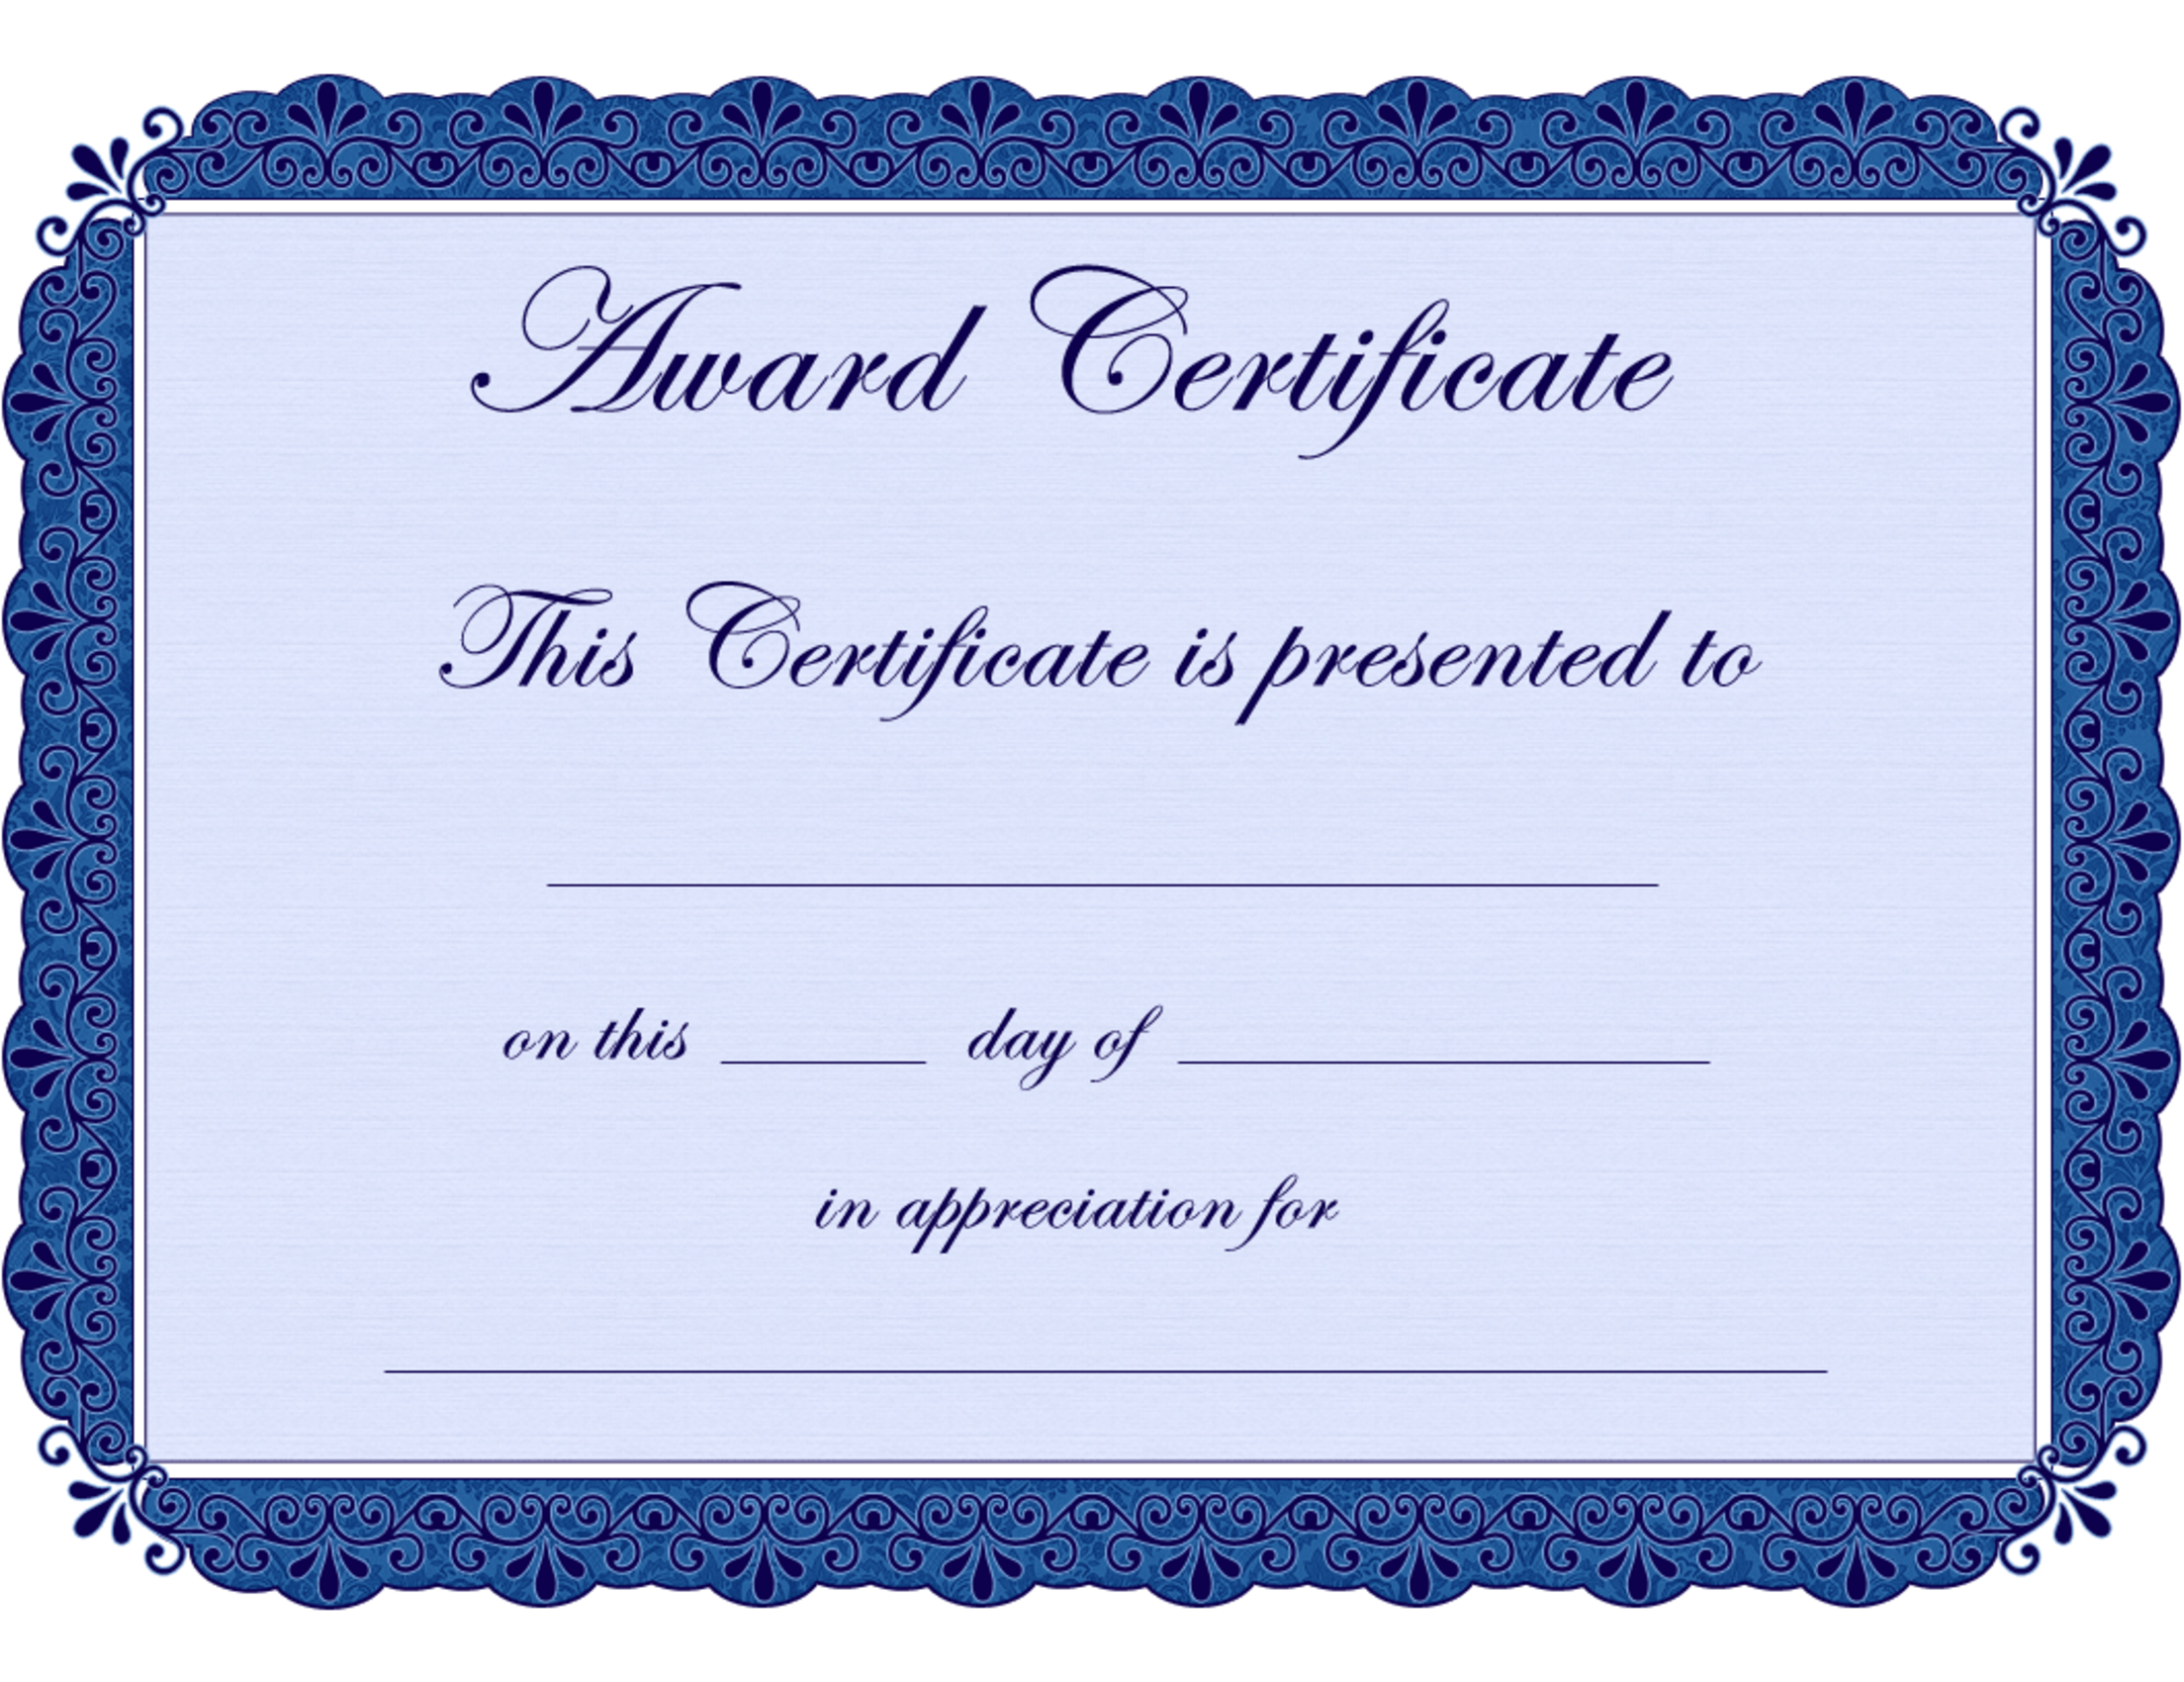 best images about award template award 17 best images about award template award certificates words and schools